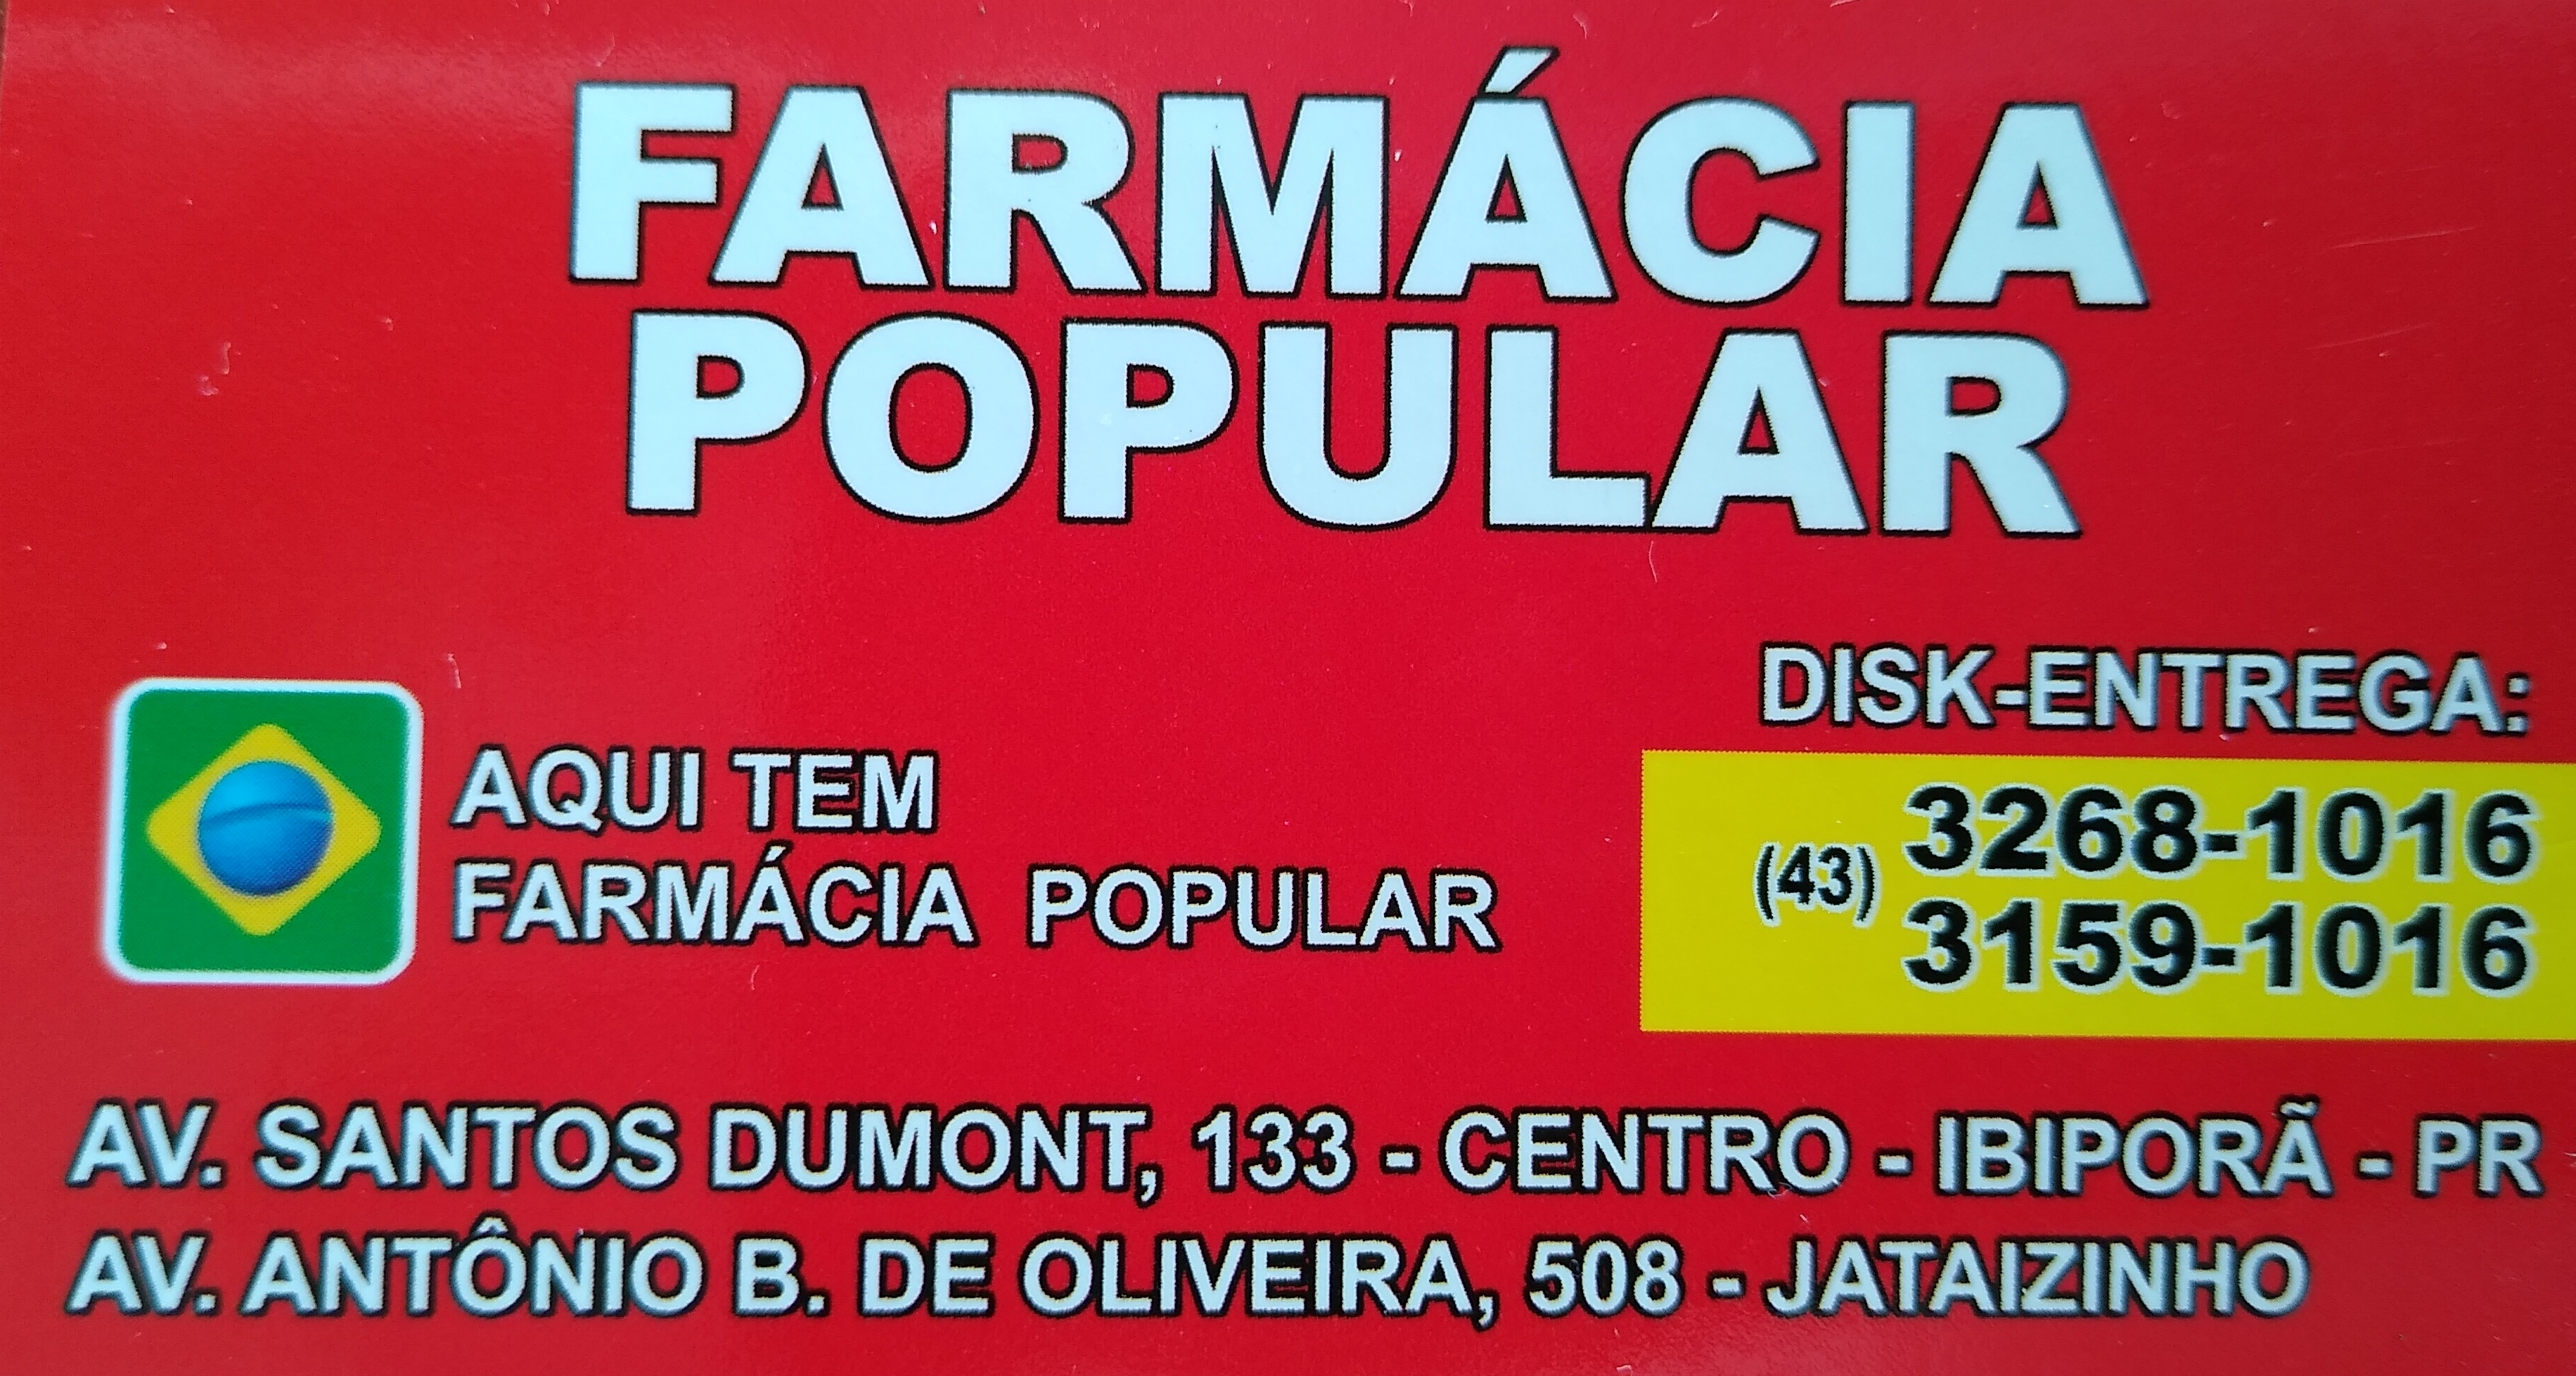 FARMÁCIA POPULAR DO VALDERI E DO LUCIANO A VERDADEIRA FARMÁCIA POPULAR